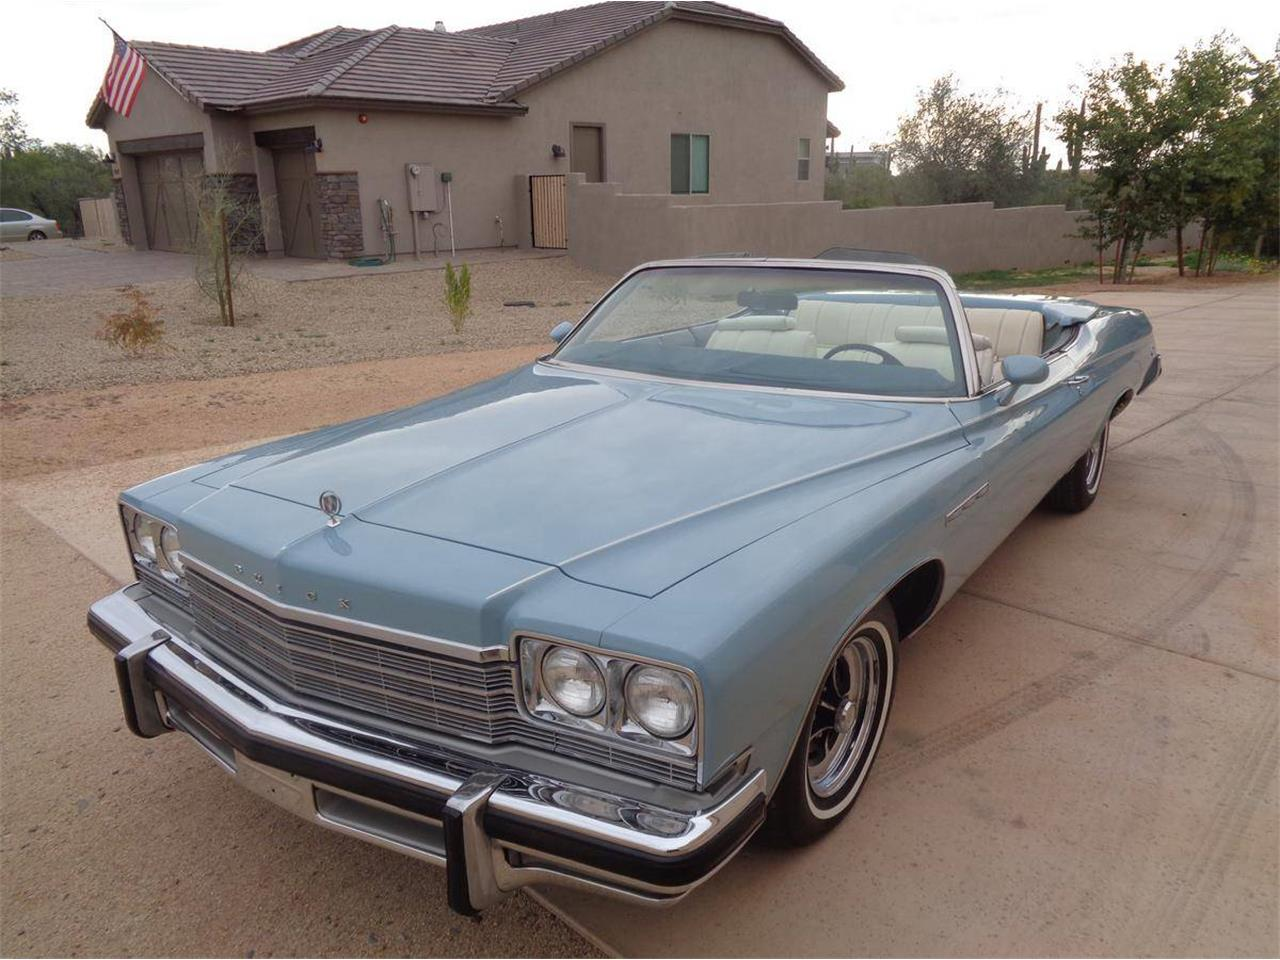 Large Picture of 1975 Buick LeSabre located in Scottsdale Arizona - PFC8